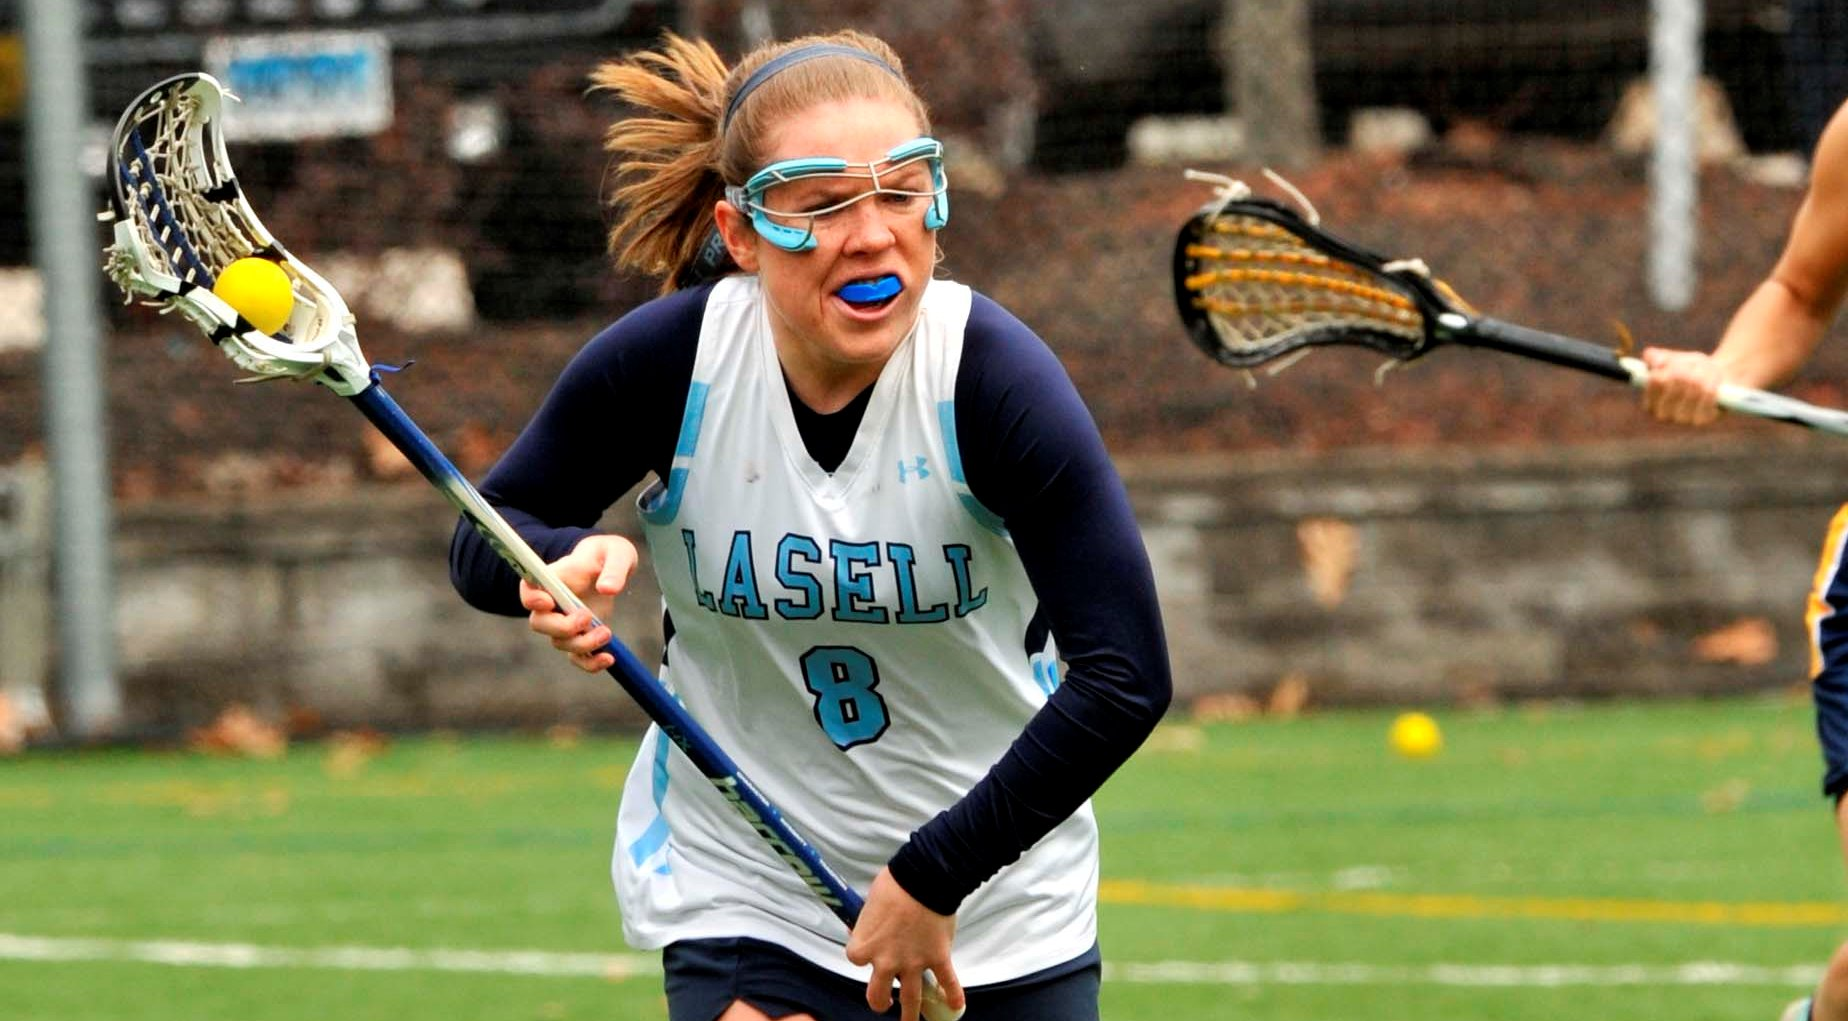 Western New England Grabs 21-8 Win Over Lasell in Women's Lacrosse